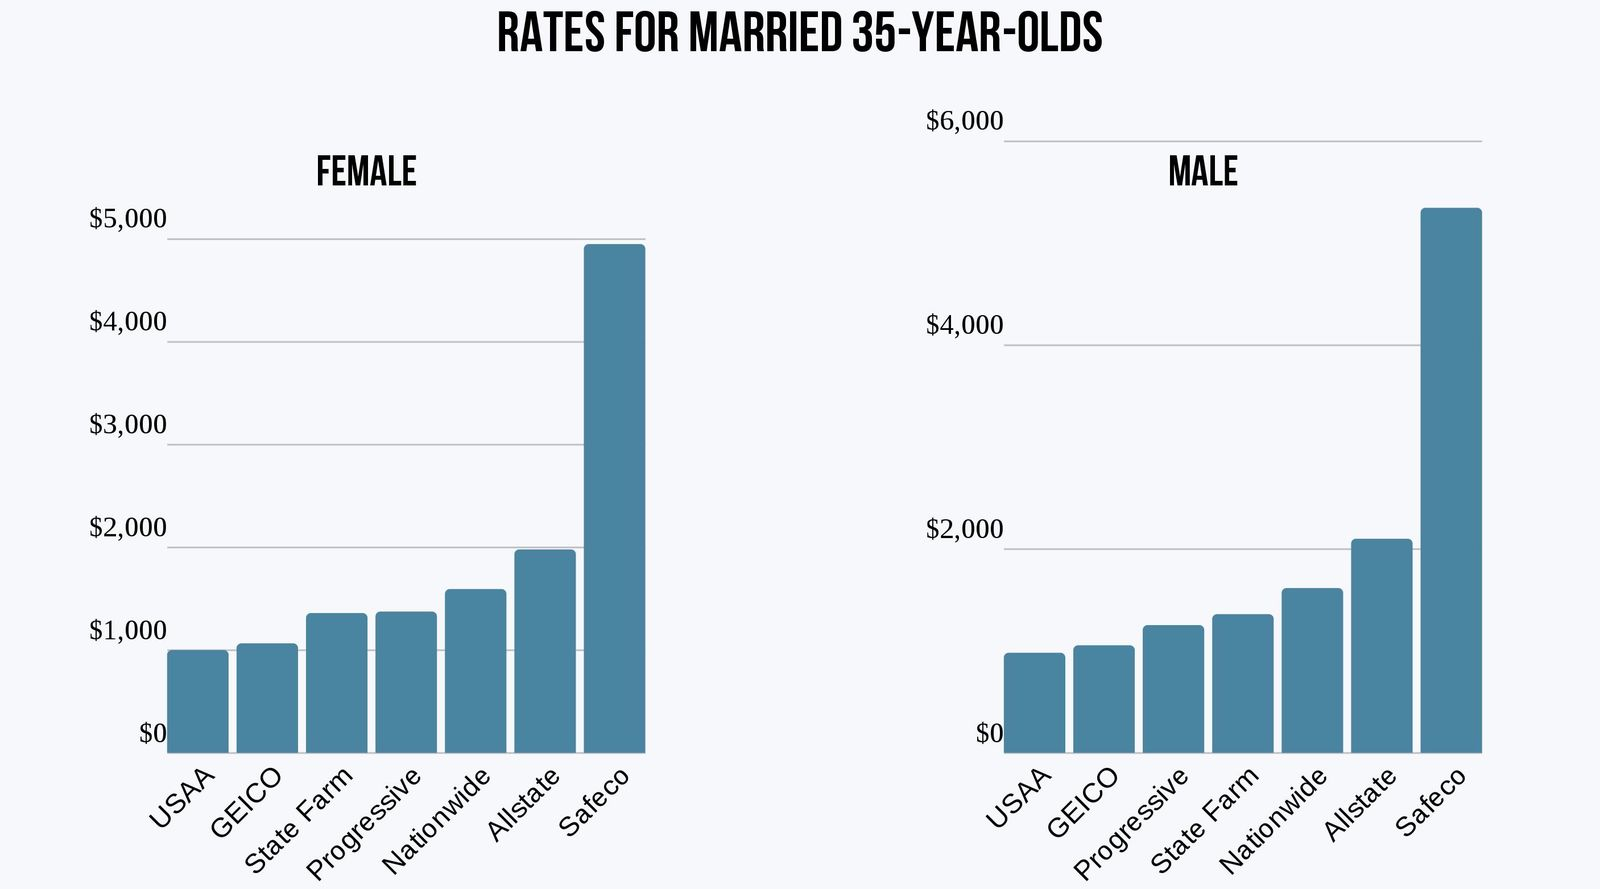 Car insurance rates for married 35-year-olds in NH